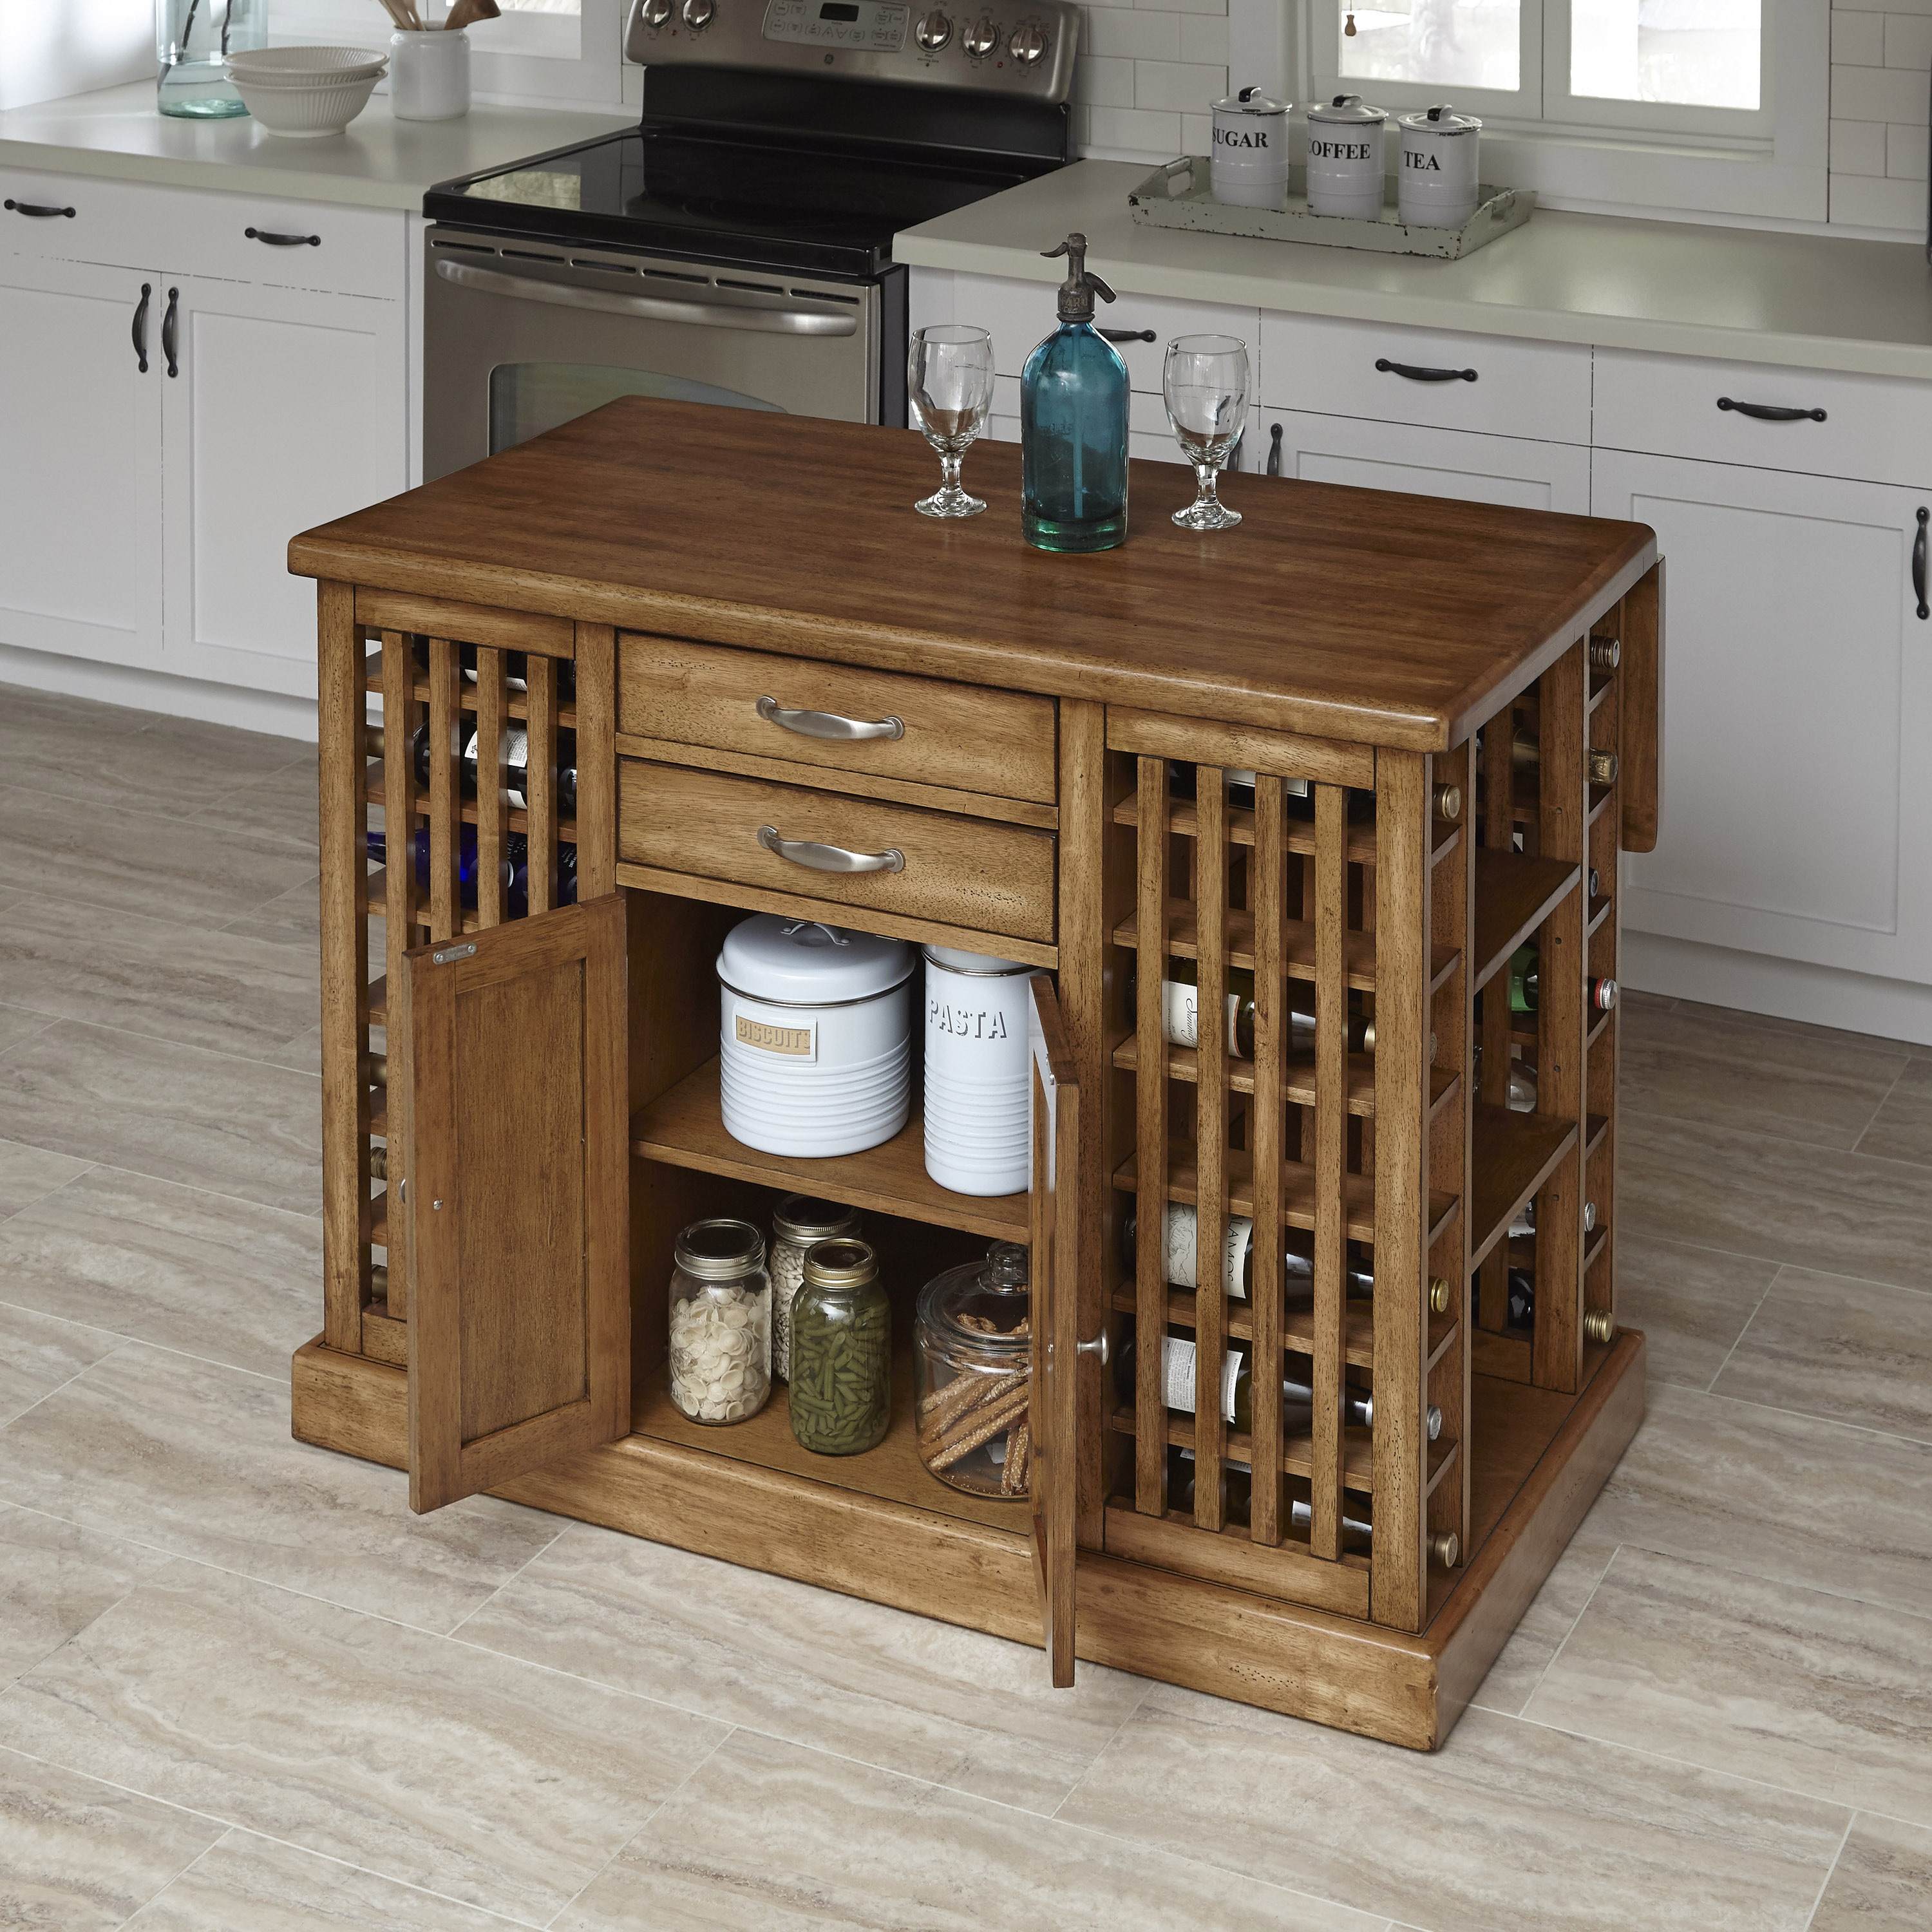 Shop Simple Living Rolling Galvin Microwave Cart: Shop The Vintner Kitchen Island By Home Styles